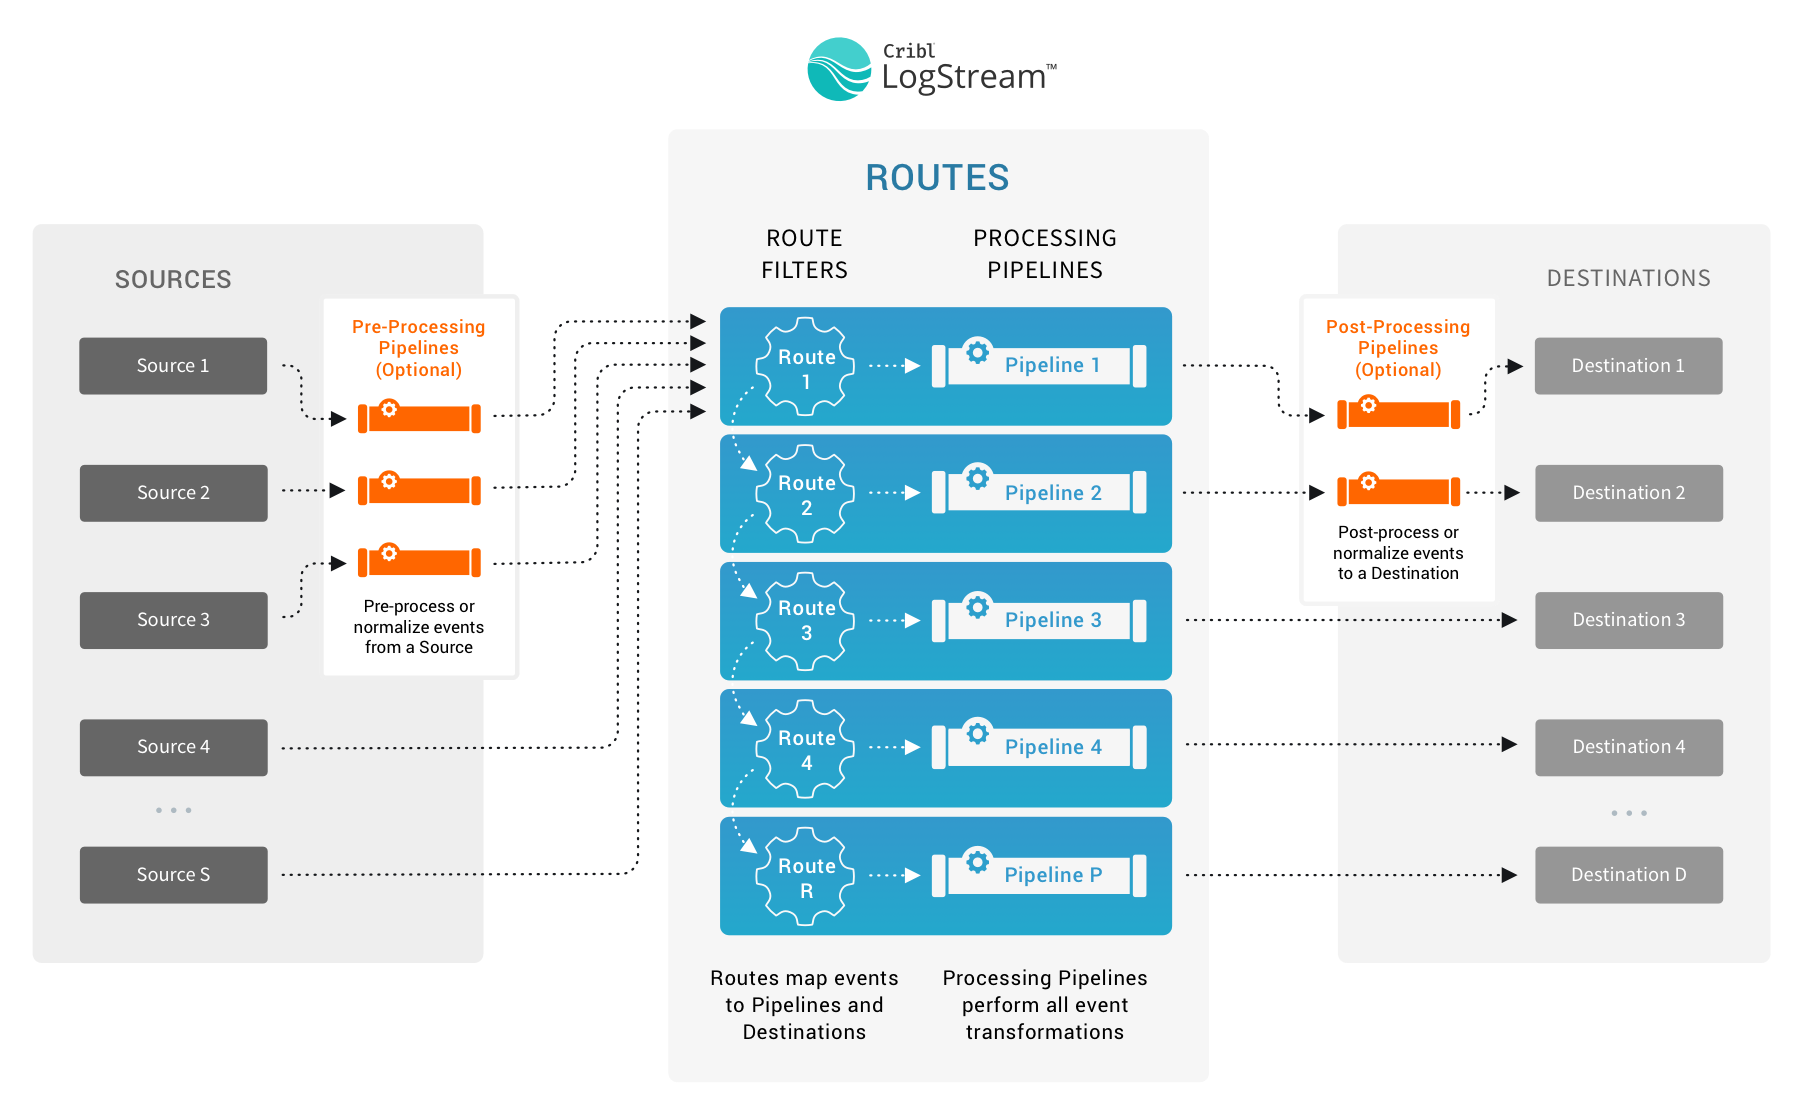 Pre-processing, processing, and post-processing Pipelines